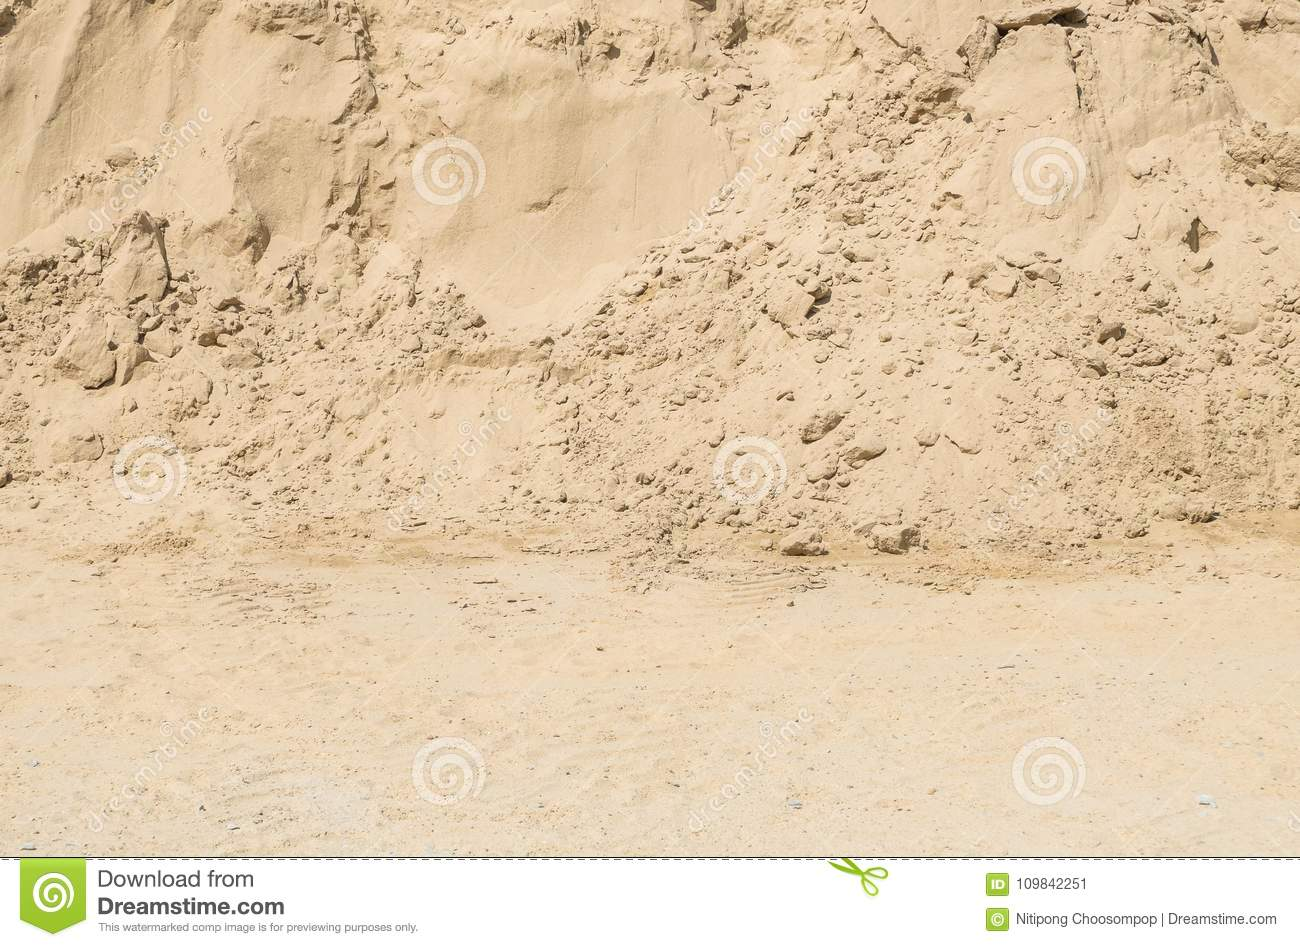 Closeup surface pile of sand for construction work with ground textured background